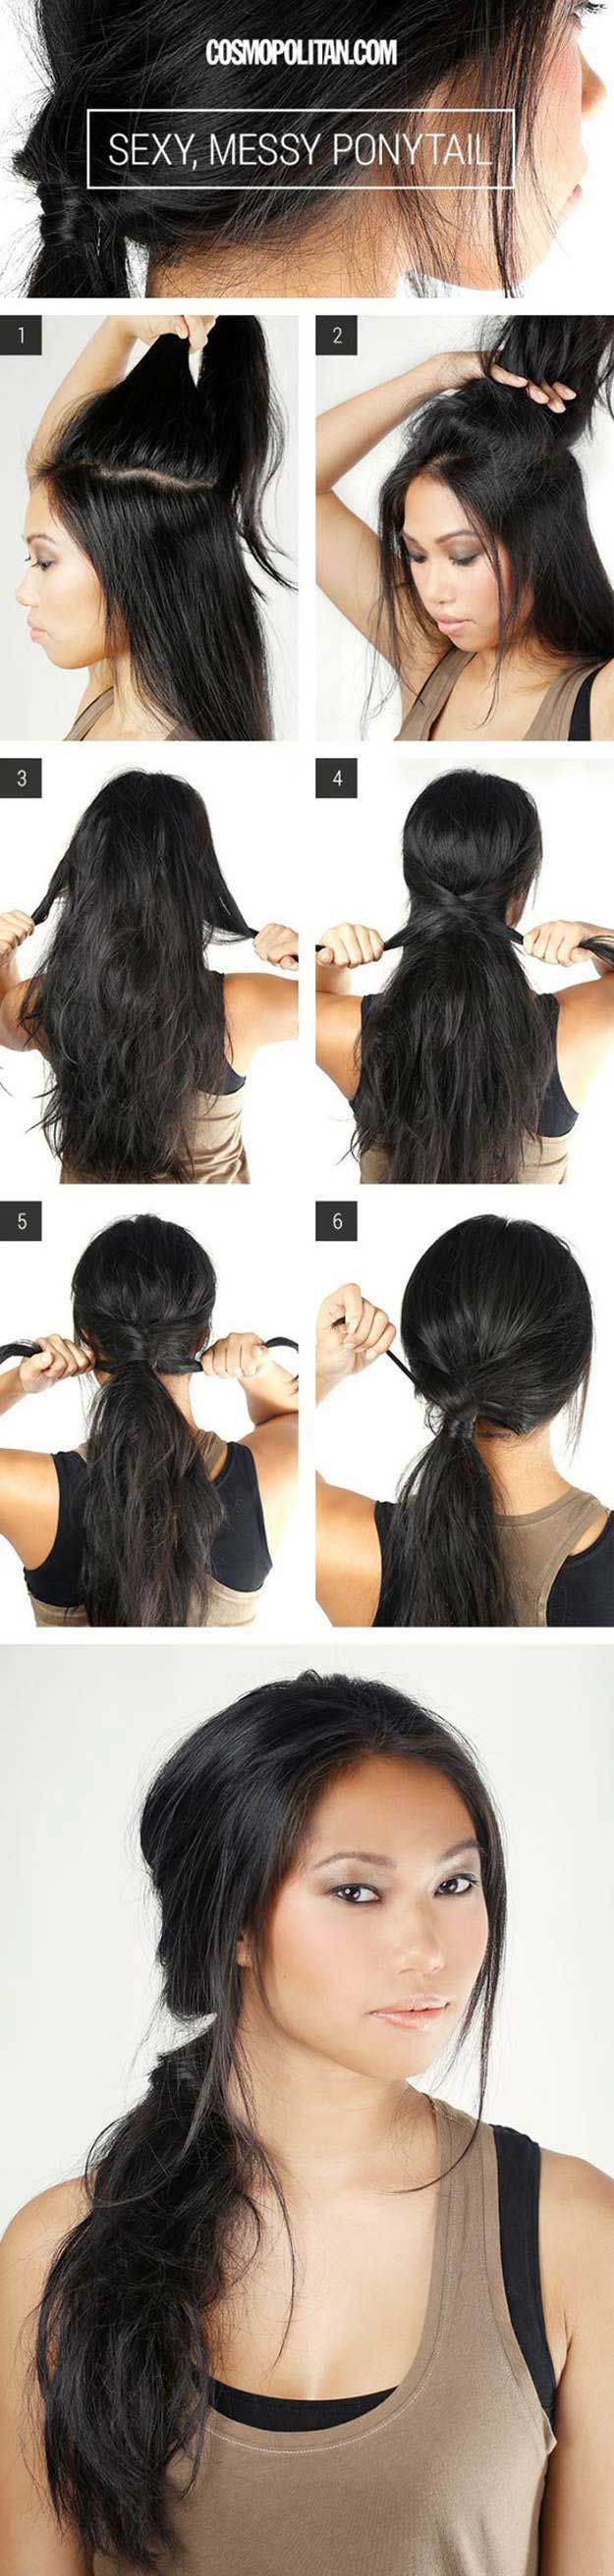 tips to instantly make your hair look thicker messy ponytail